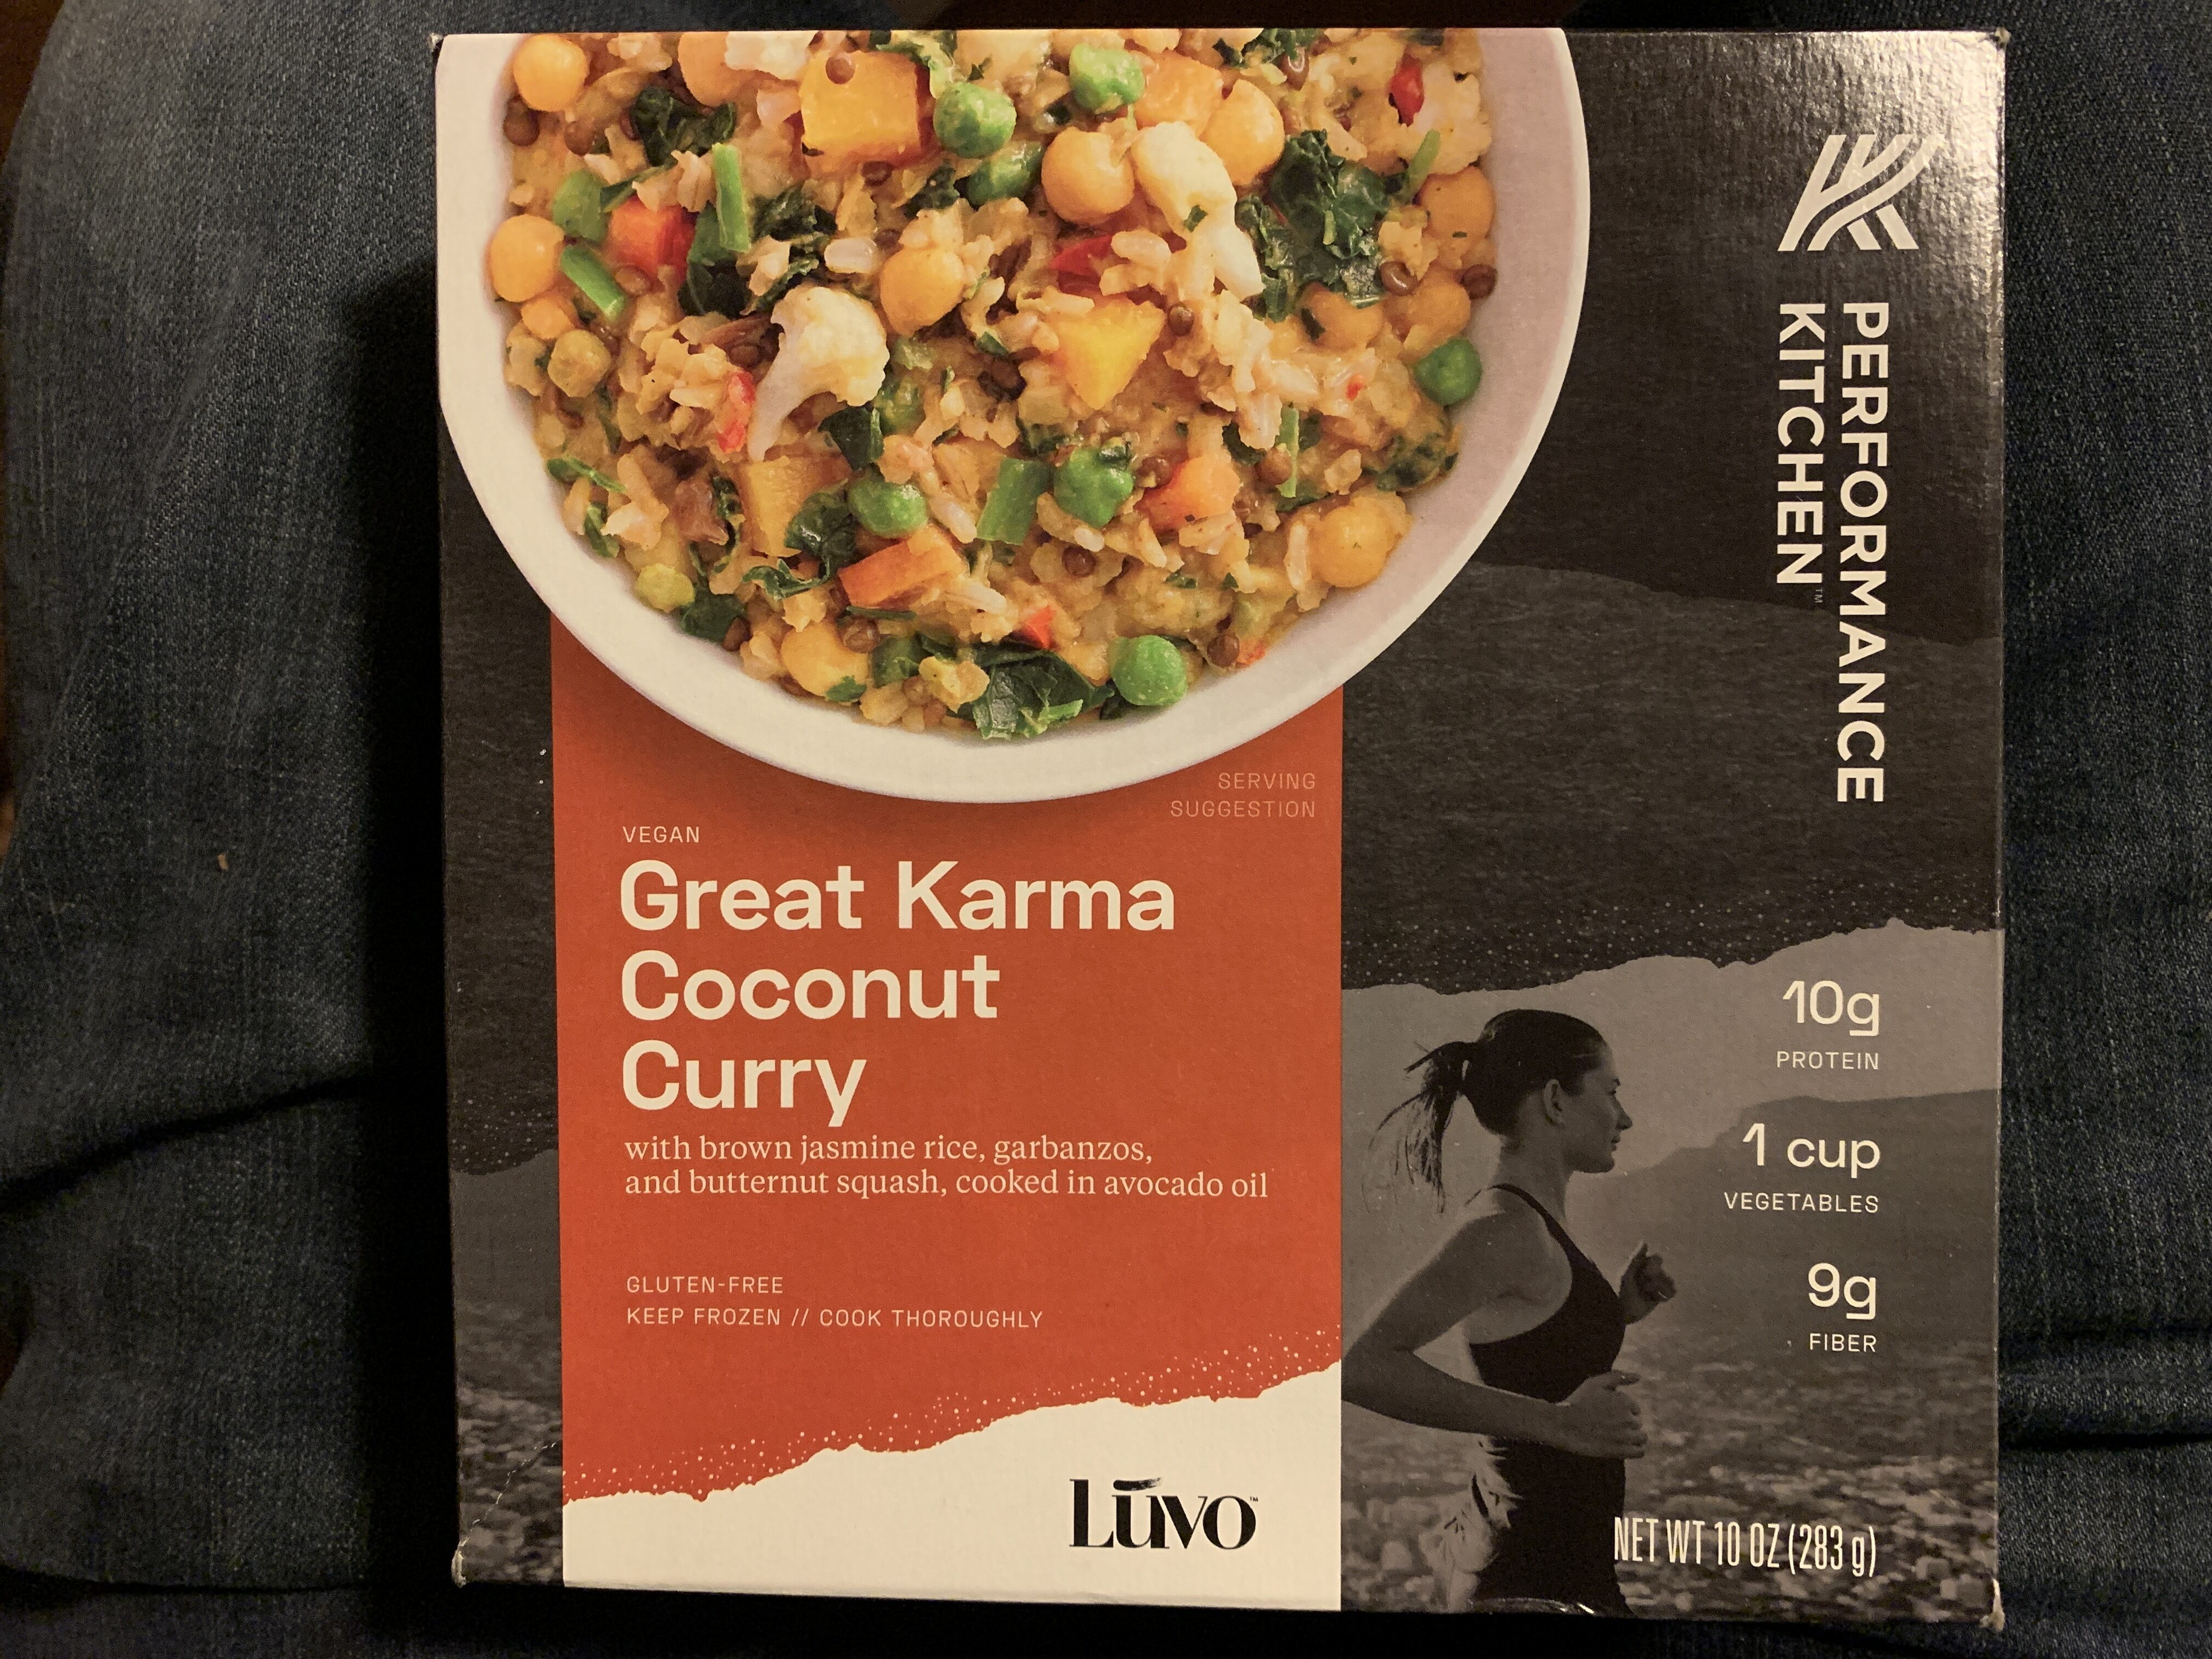 Great karma coconut curry bowl with brown jasmine rice, garbanzos, and butternut squash, cooked in avocado oil, great karma coconut curry - Product - en